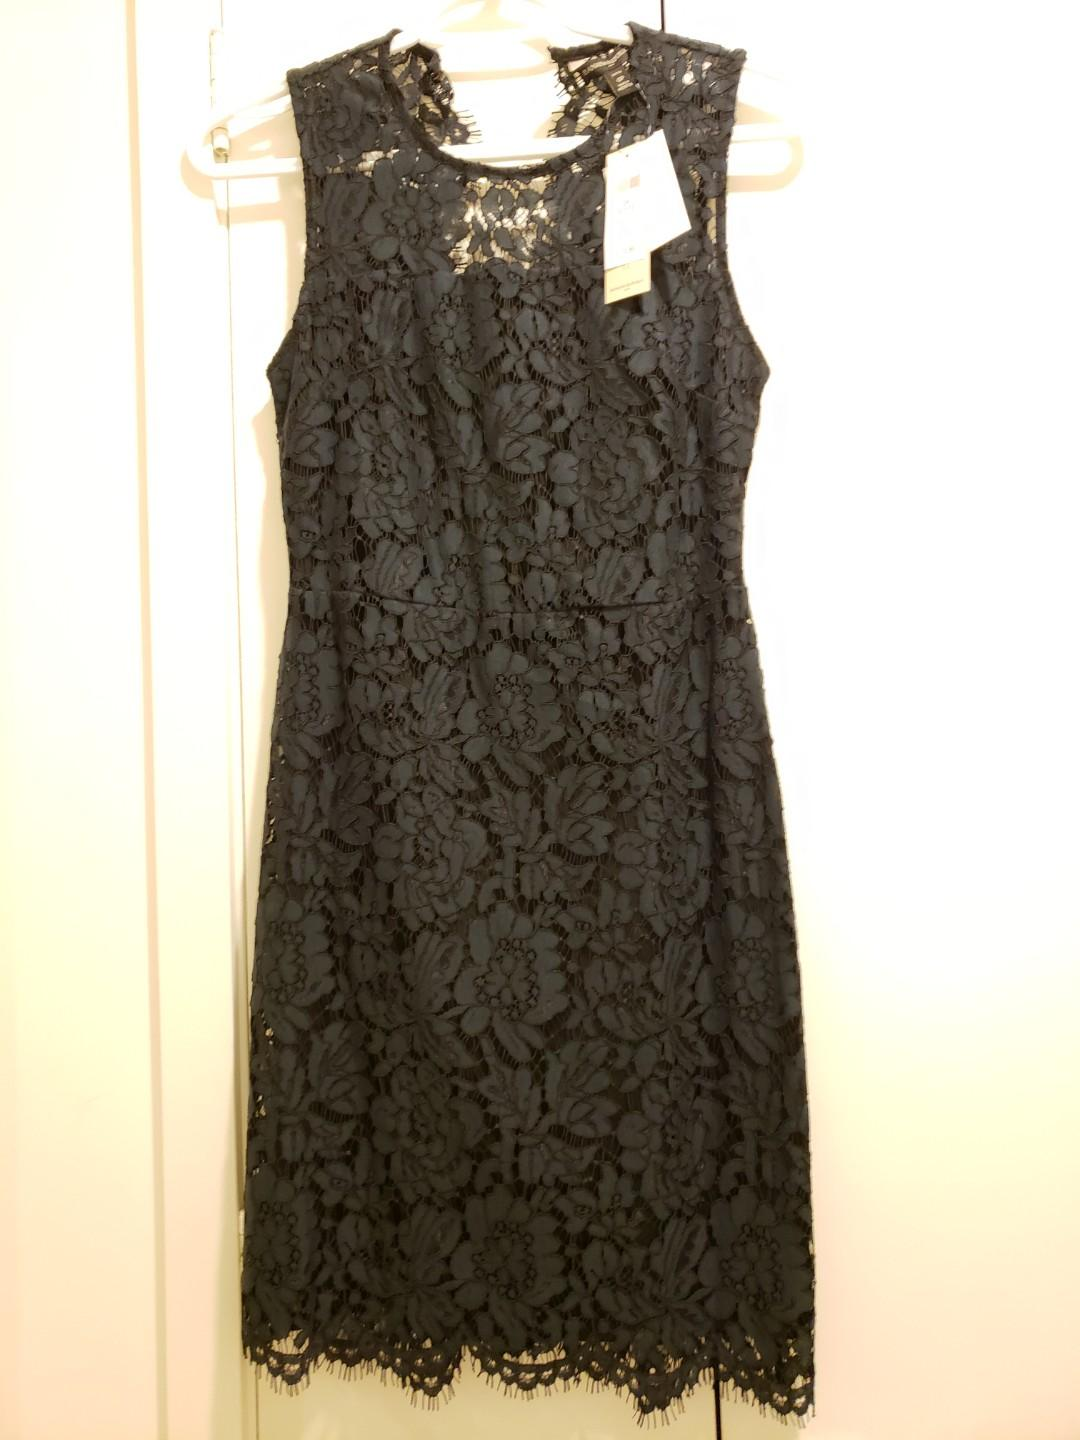 Banana republic 0 P petite brand new with tags navy blue lace pencil dress